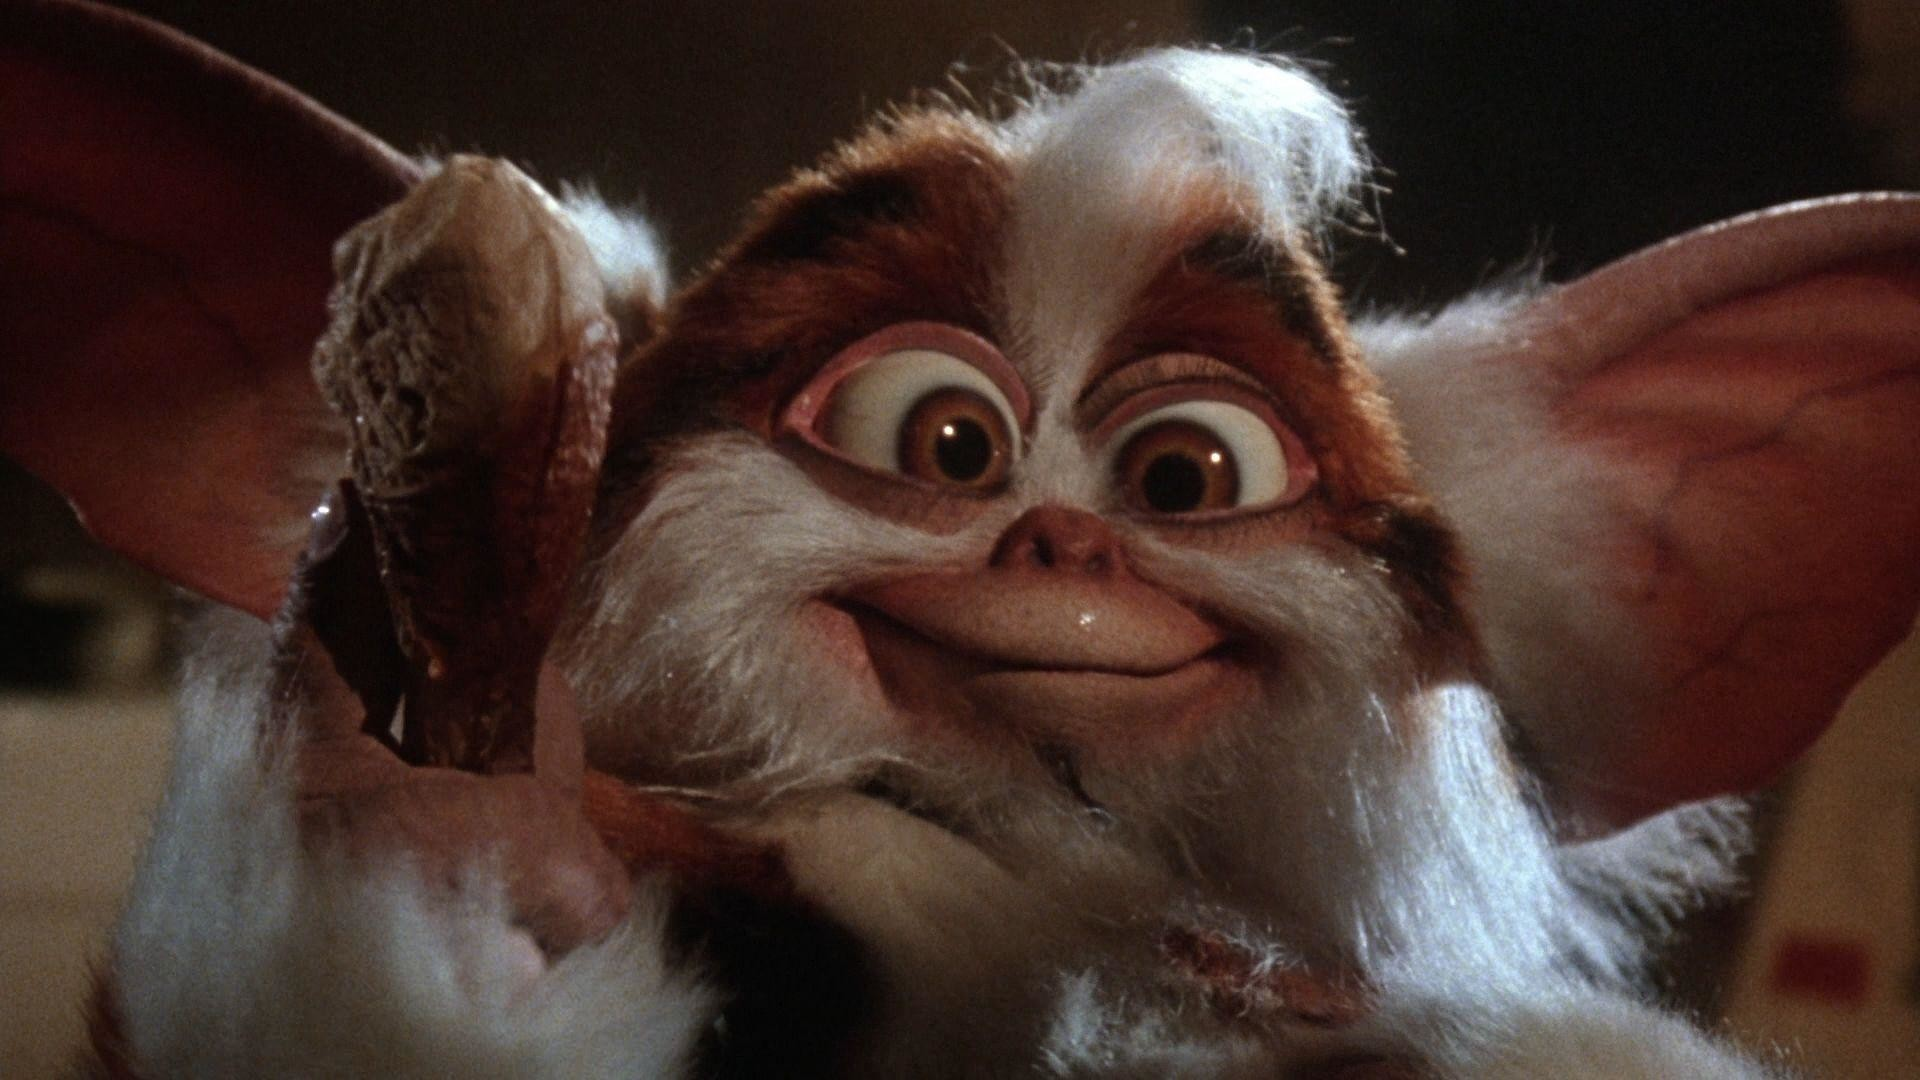 Res: 1920x1080, Images For > Gremlins Gizmo Rambo